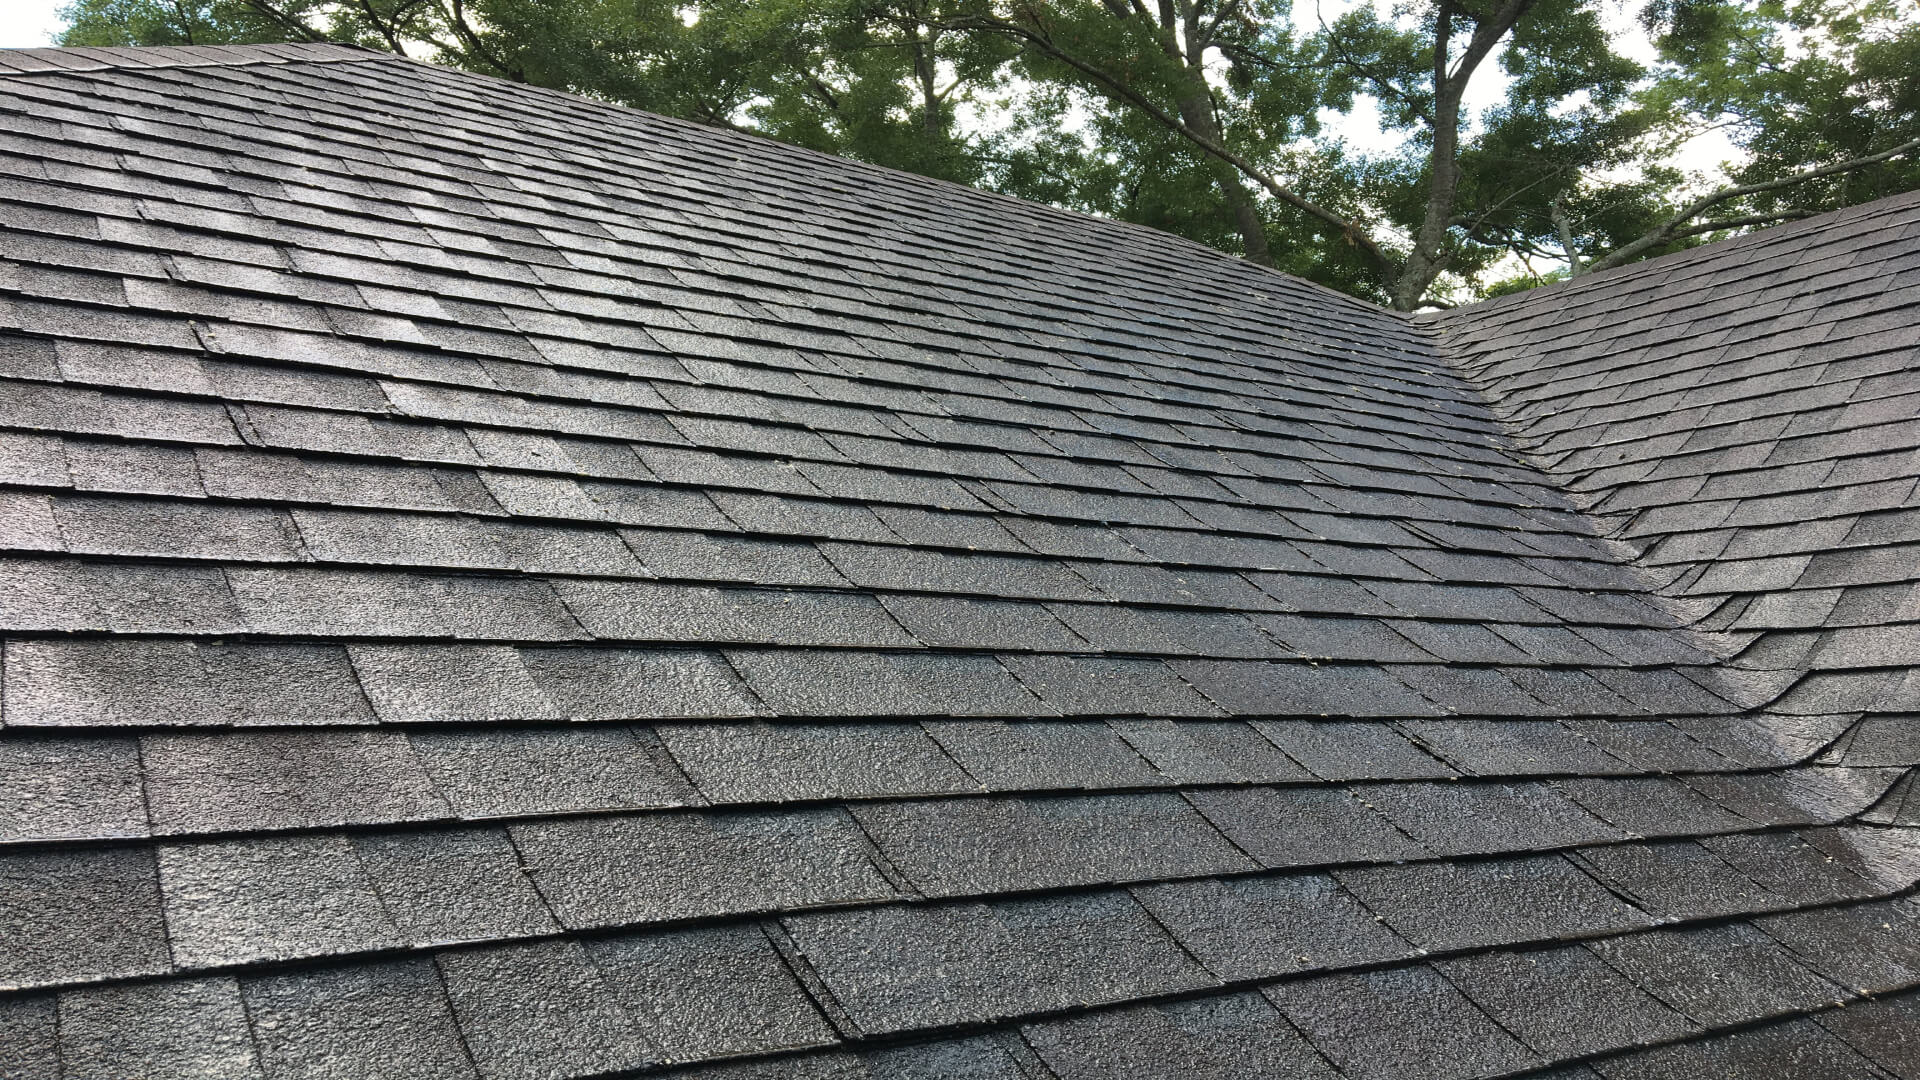 Asphalt Shingle Roof After